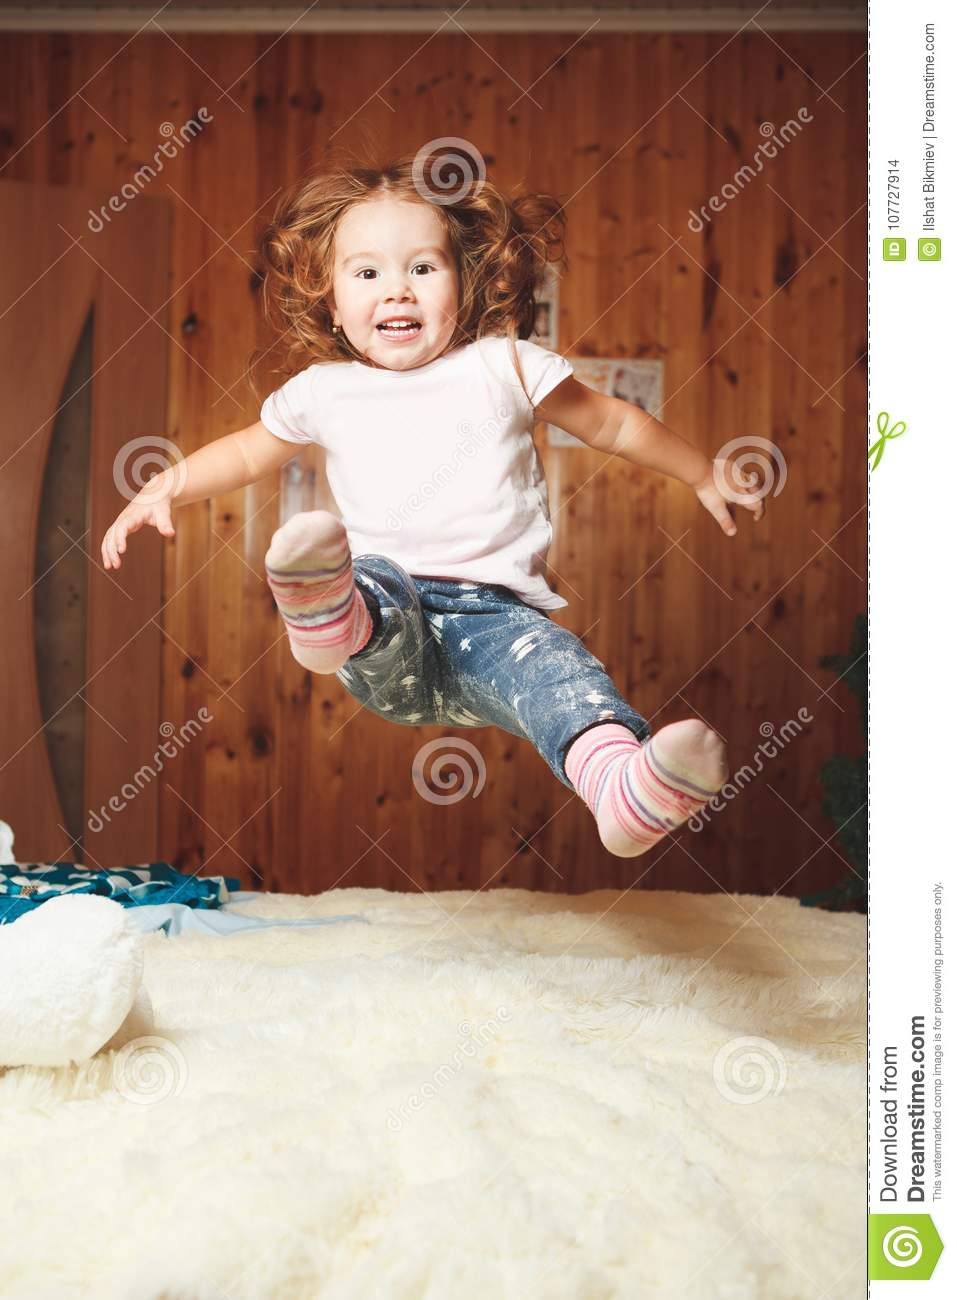 Download Funny Baby Jumping On The Bed Stock Photo Image Of Jumps Home